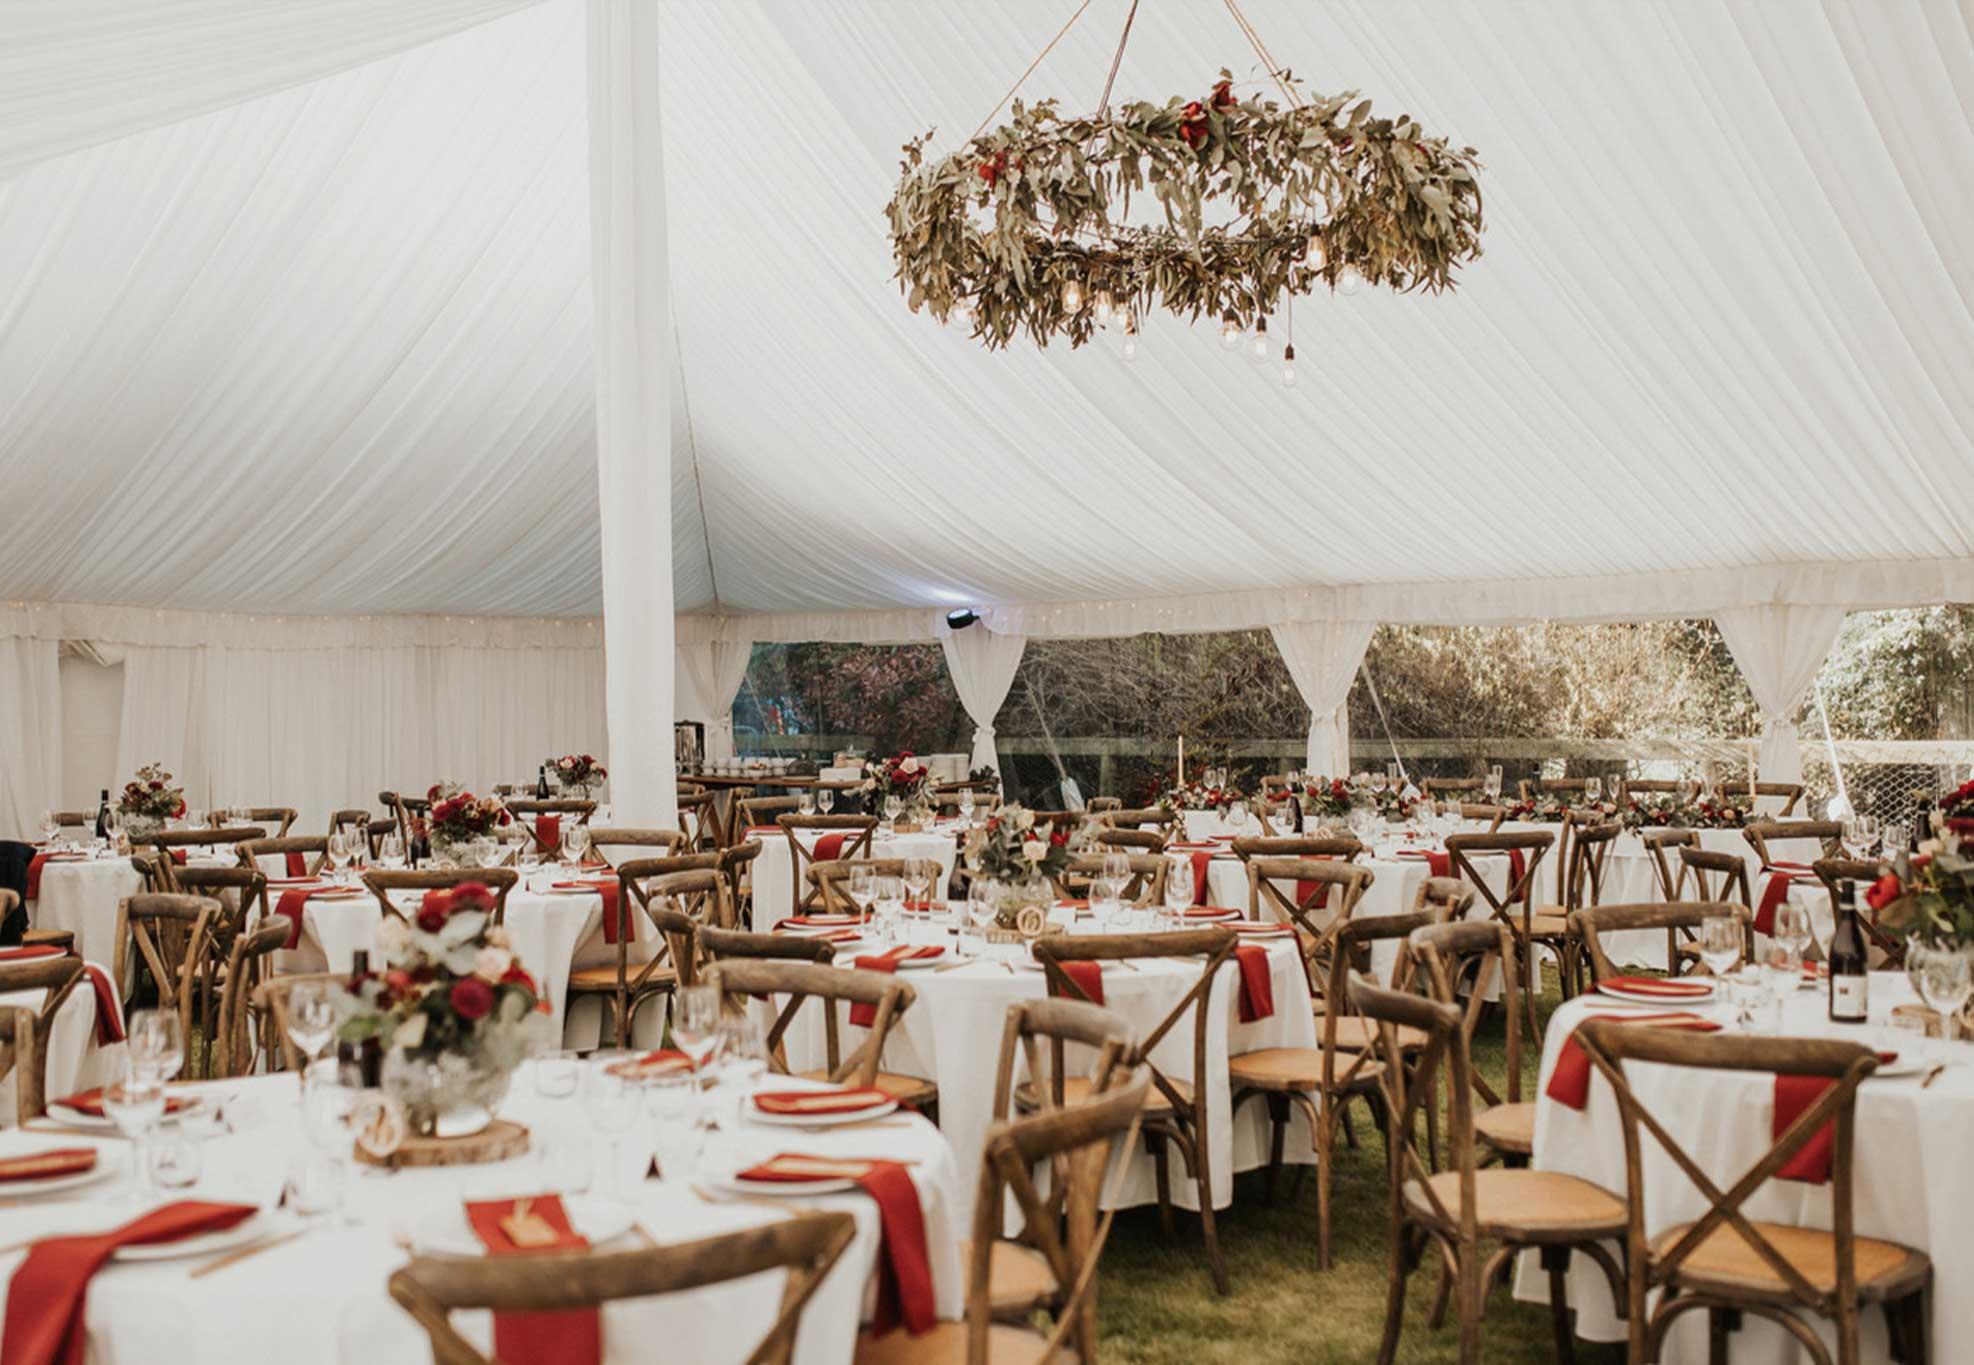 silk-estate-marquee-weddings-and-events-styling-and-hire-lightting-festoon-11